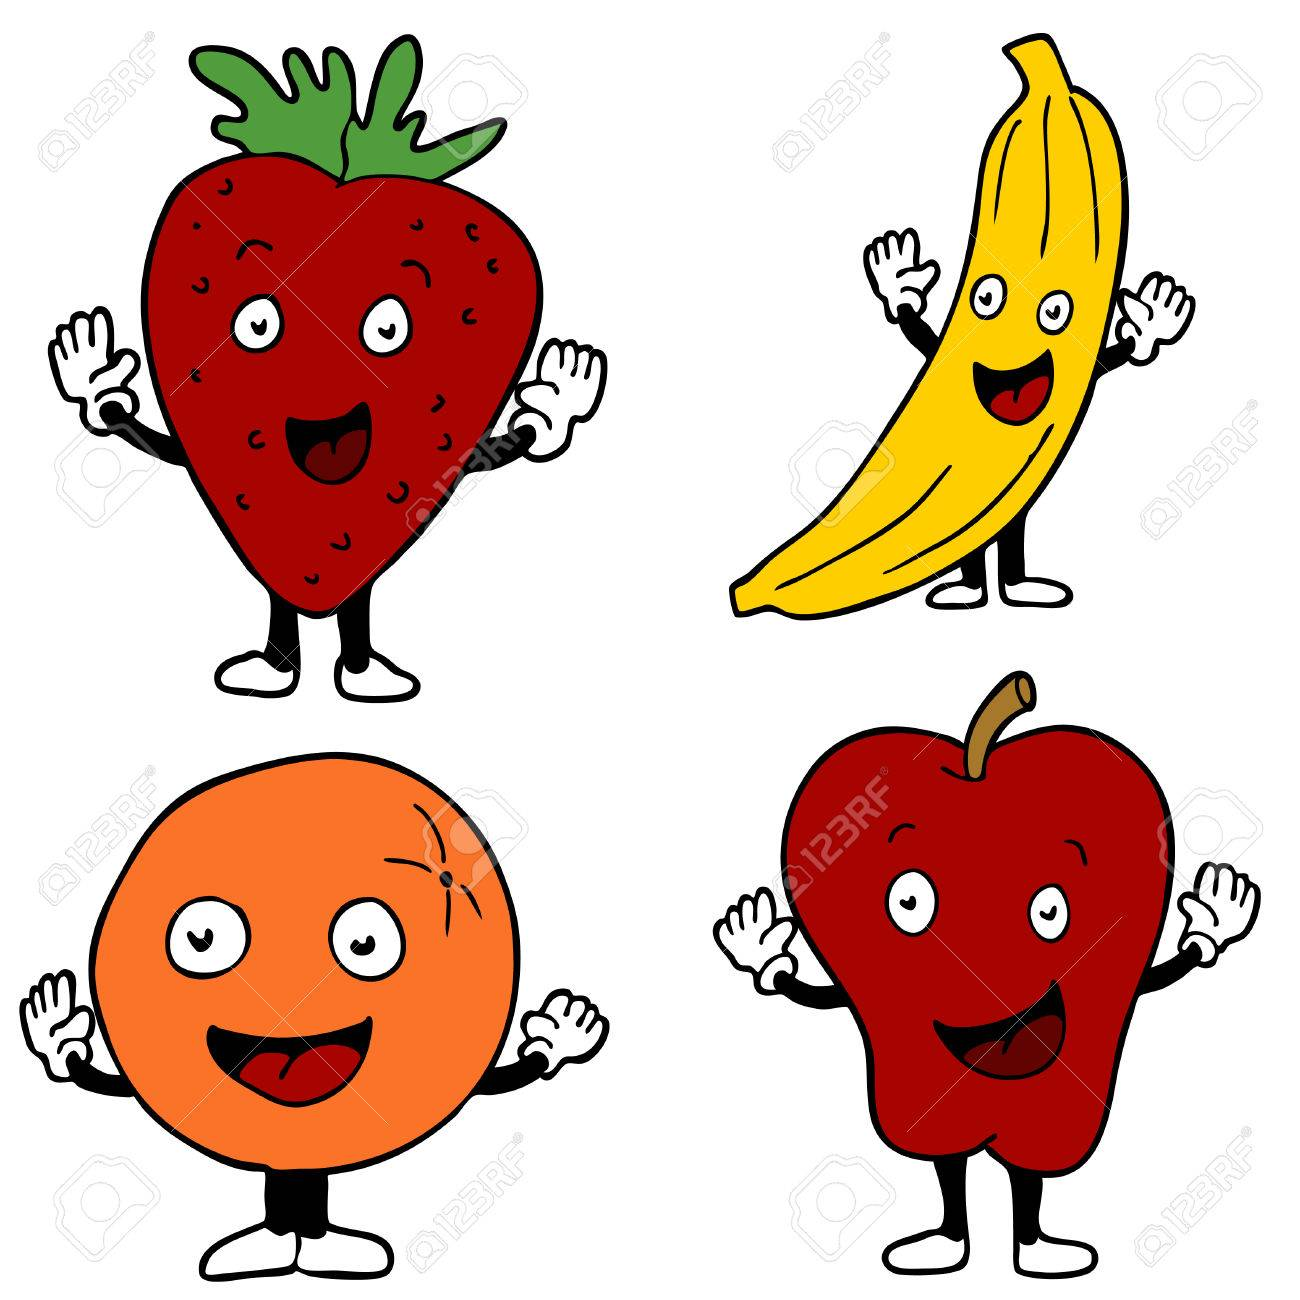 An image of fruit cartoon characters. Stock Vector - 7649177